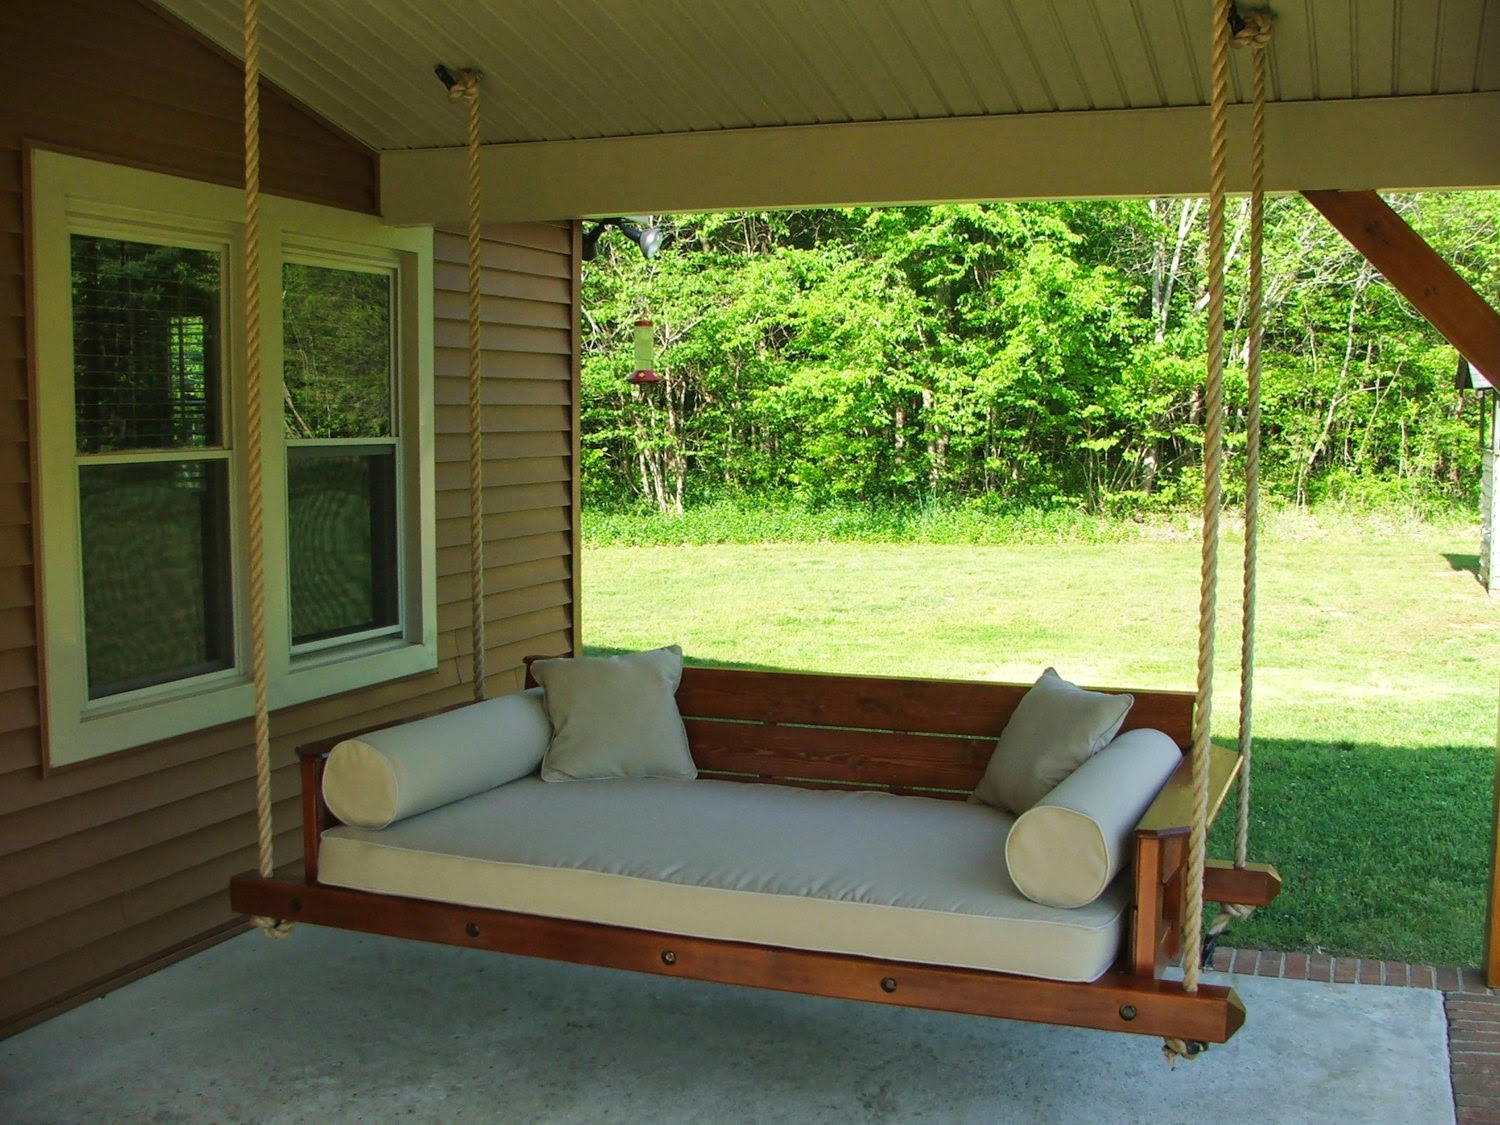 Image of: Daybed Porch Swing Design